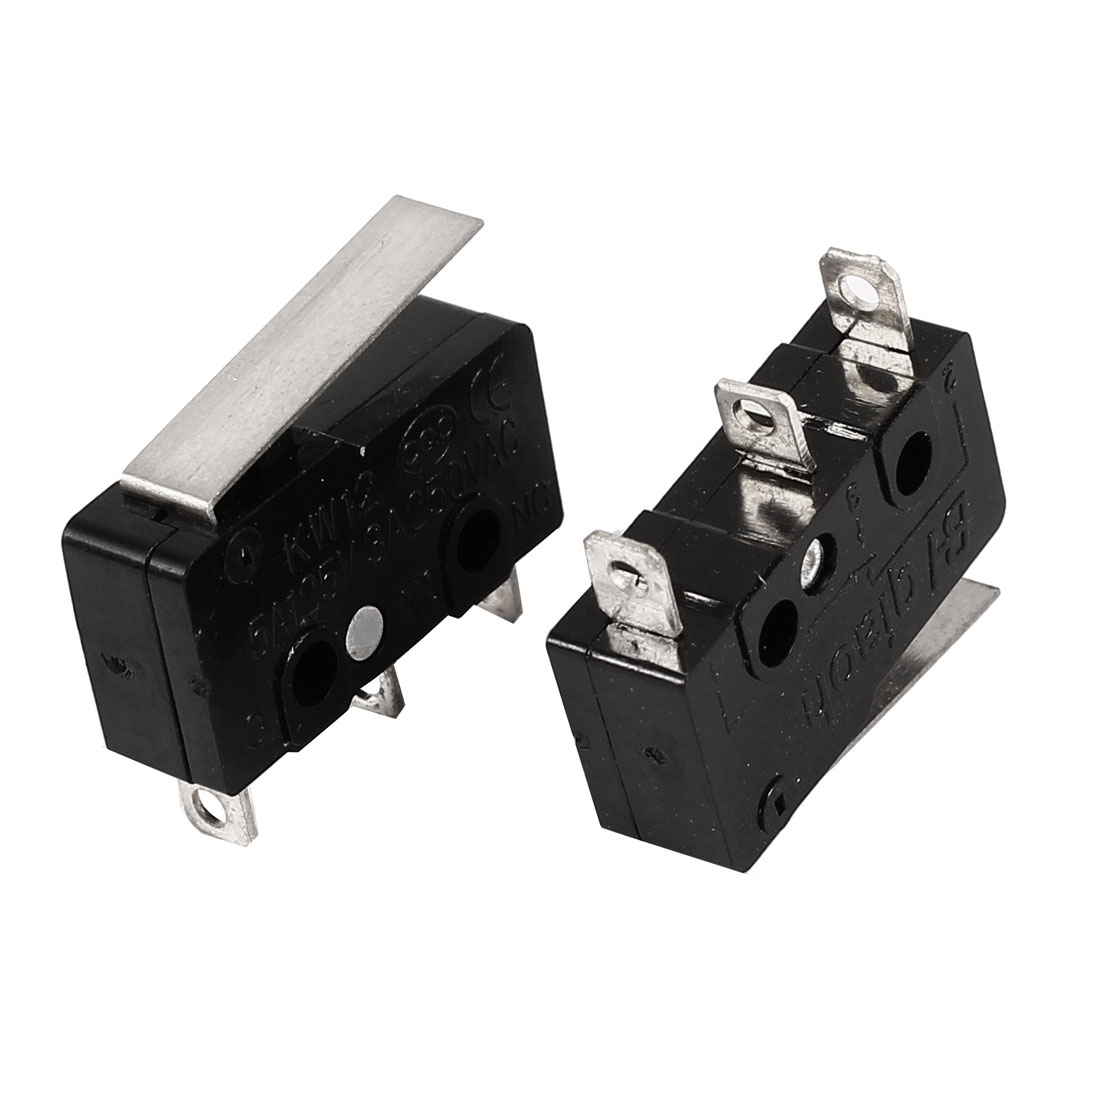 2 Pcs Micro Limit Switch Straight Hinge Lever Miniature Snap Action LOT